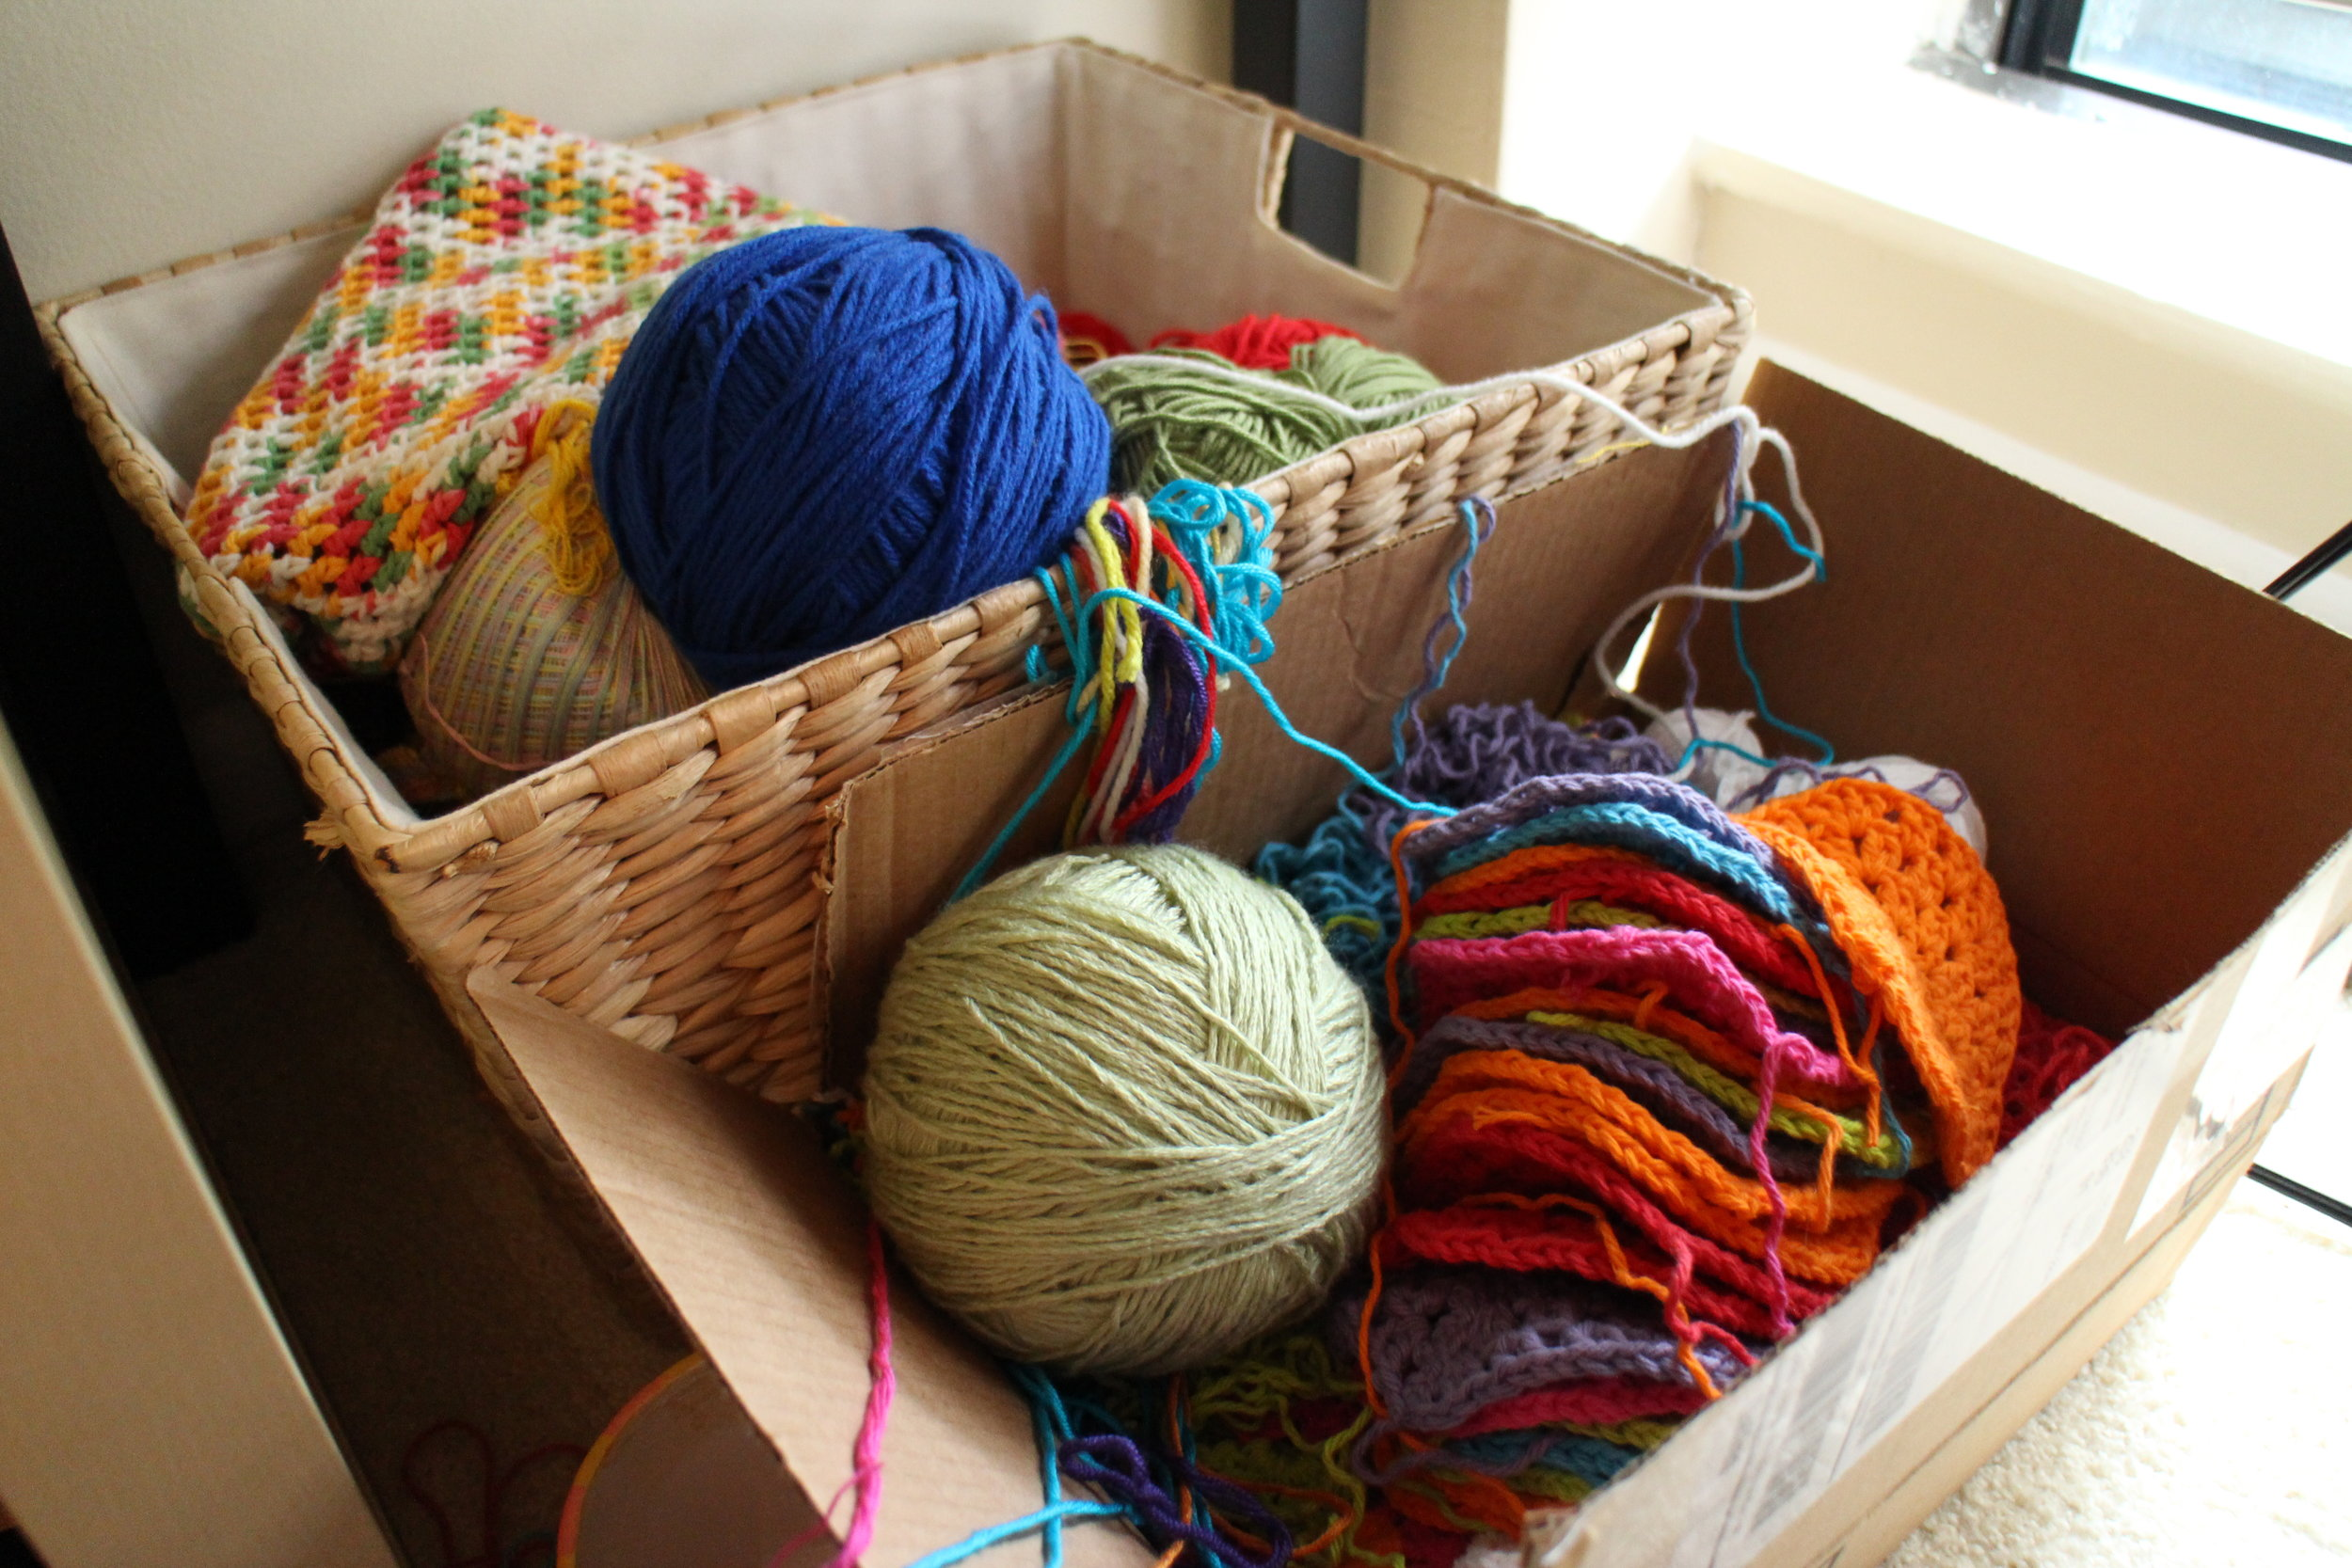 Overflowing Craft Basket